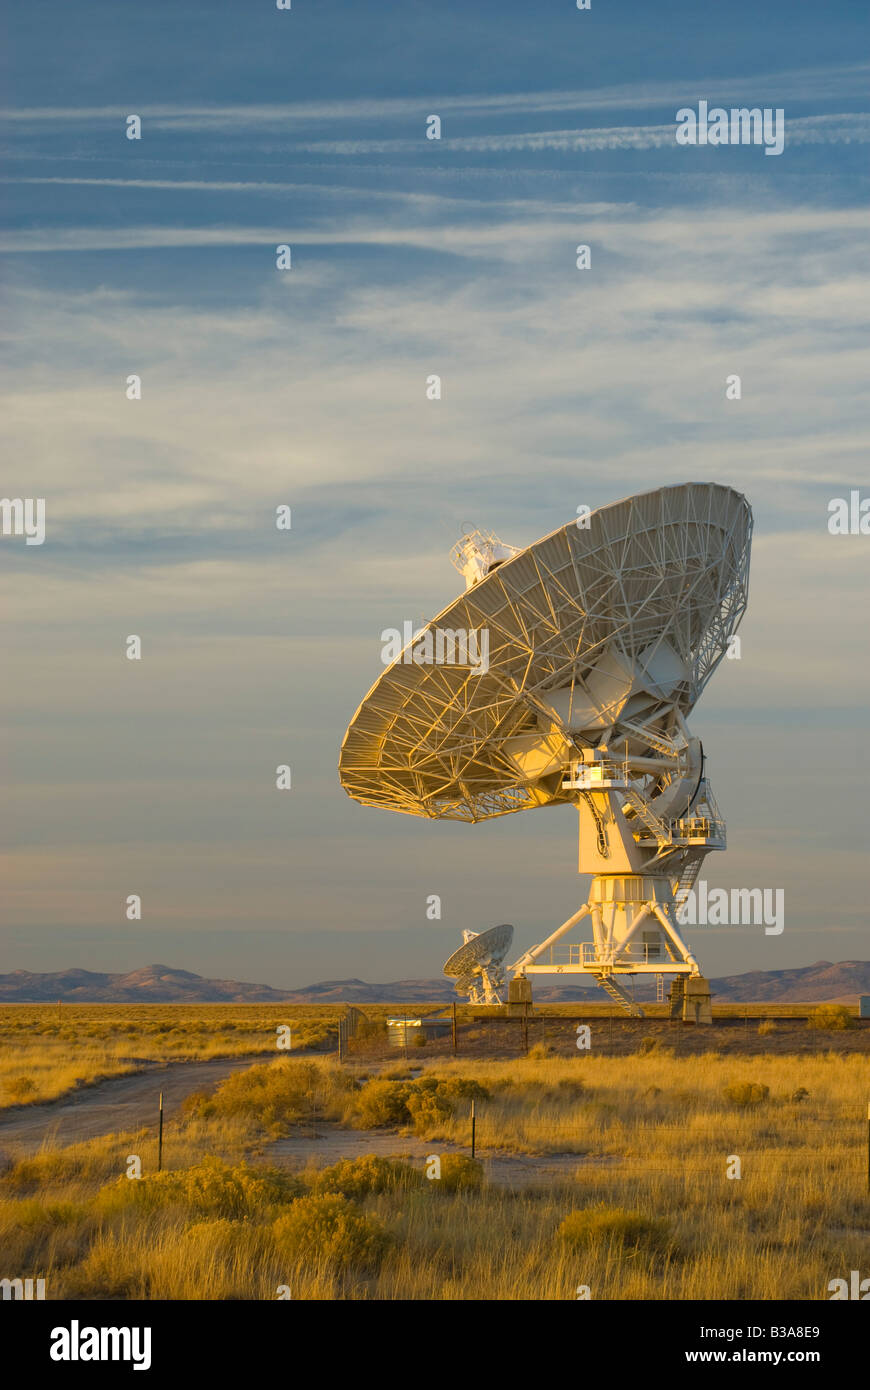 USA, New Mexico, VLA (Very Large Array) of the National Radio Astronomy Observatory Stock Photo